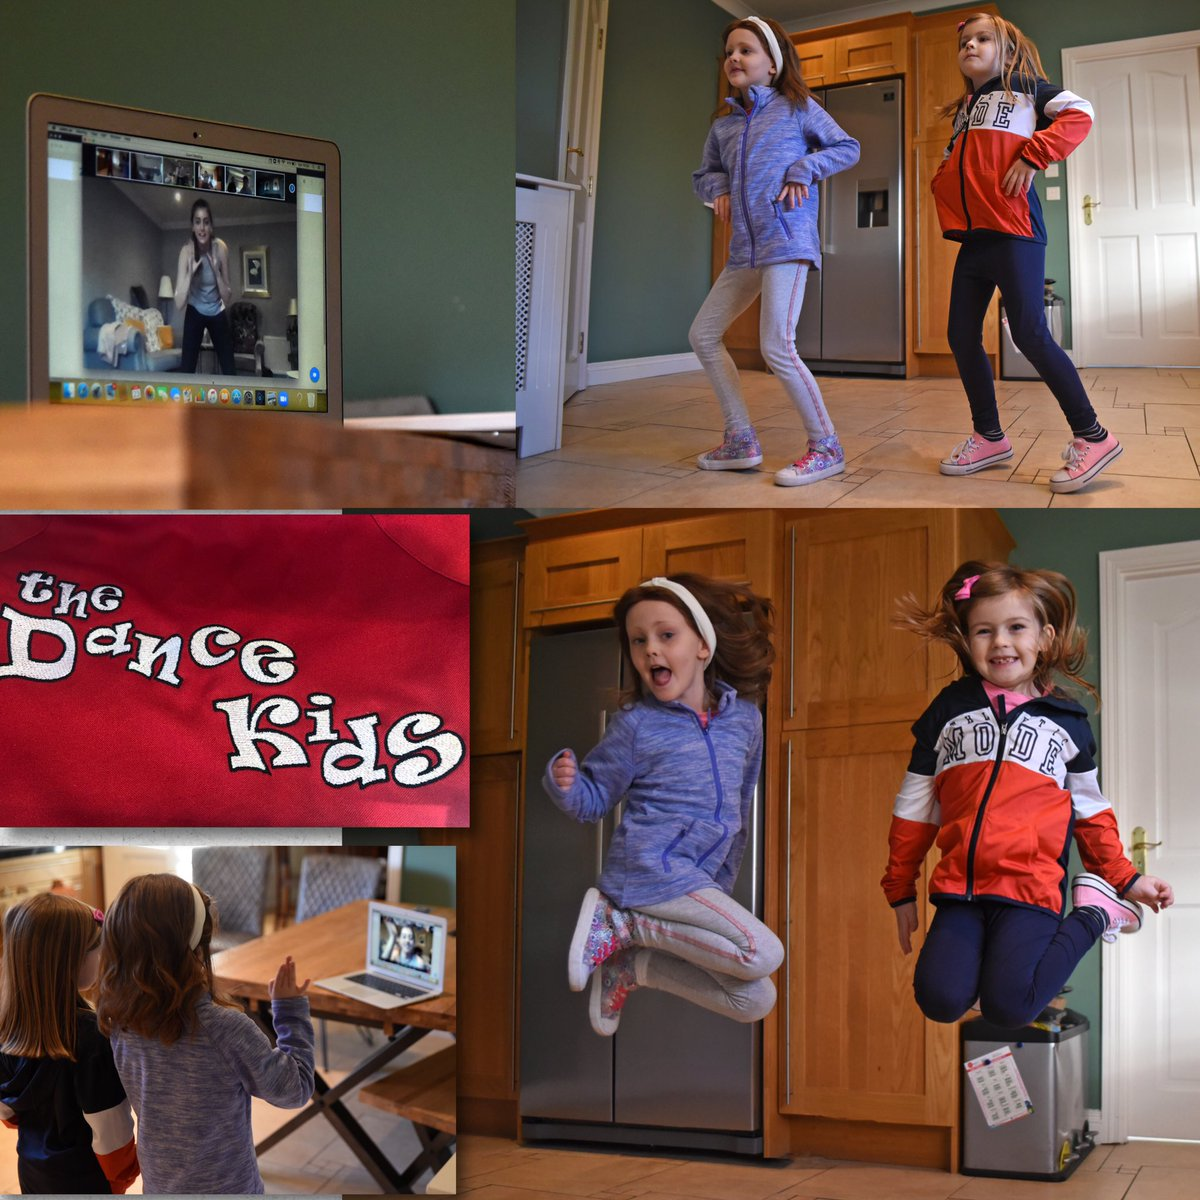 Zoom, Dance and Smiles. Thanks @Dance_Kids_Rock, Girls loved the class and seeing their friends 😊❤️💃 #dancekids #zoom